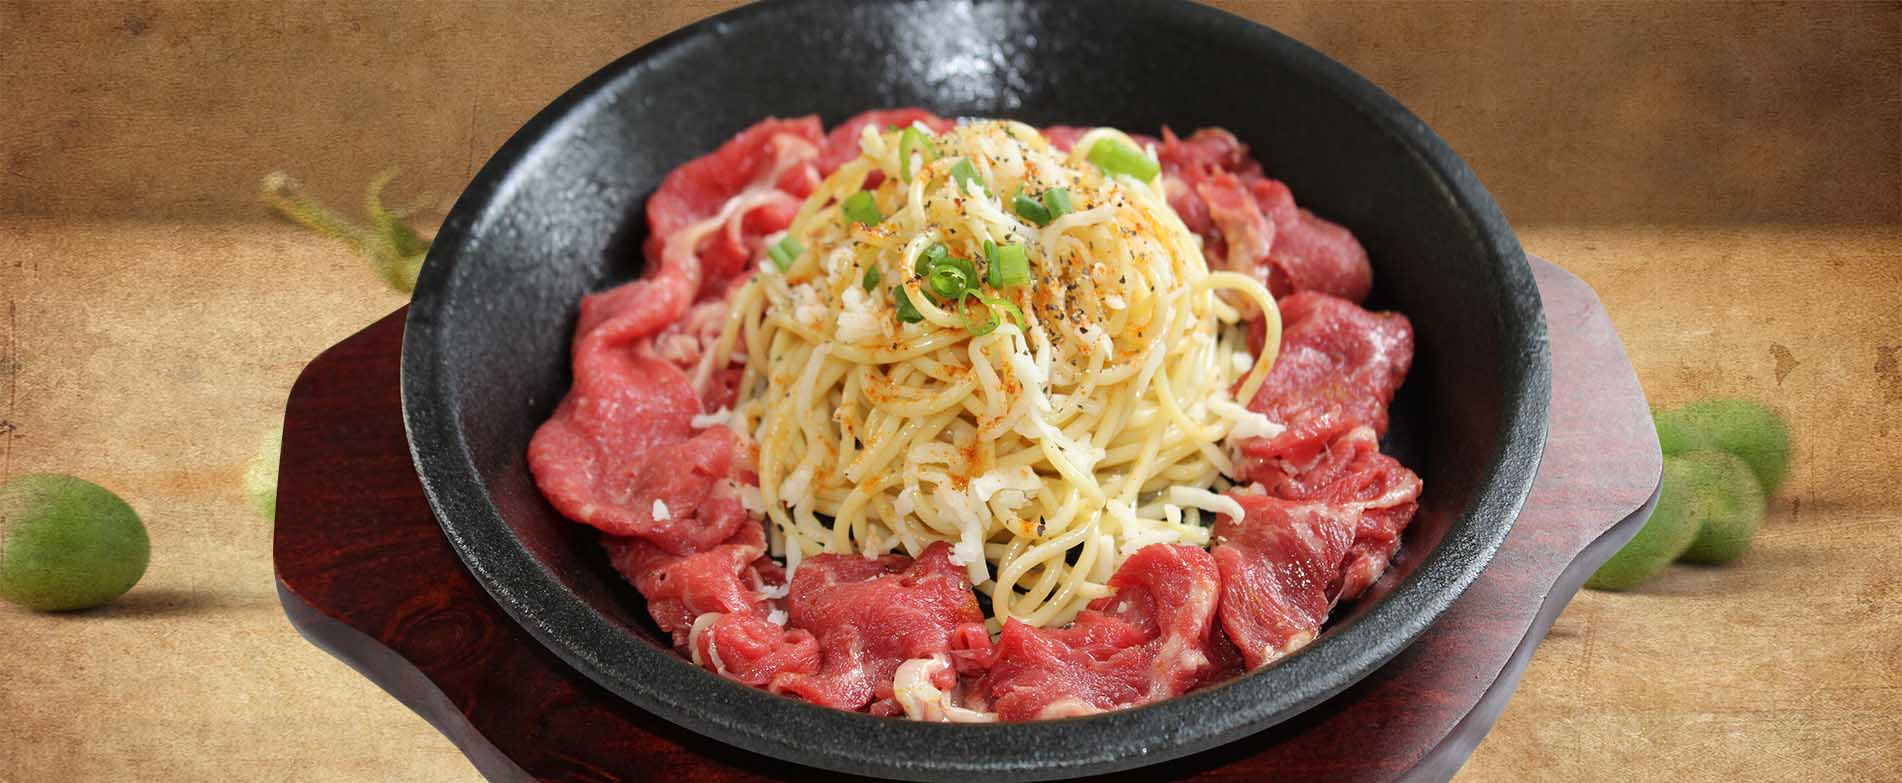 korean-food-pasta-beef